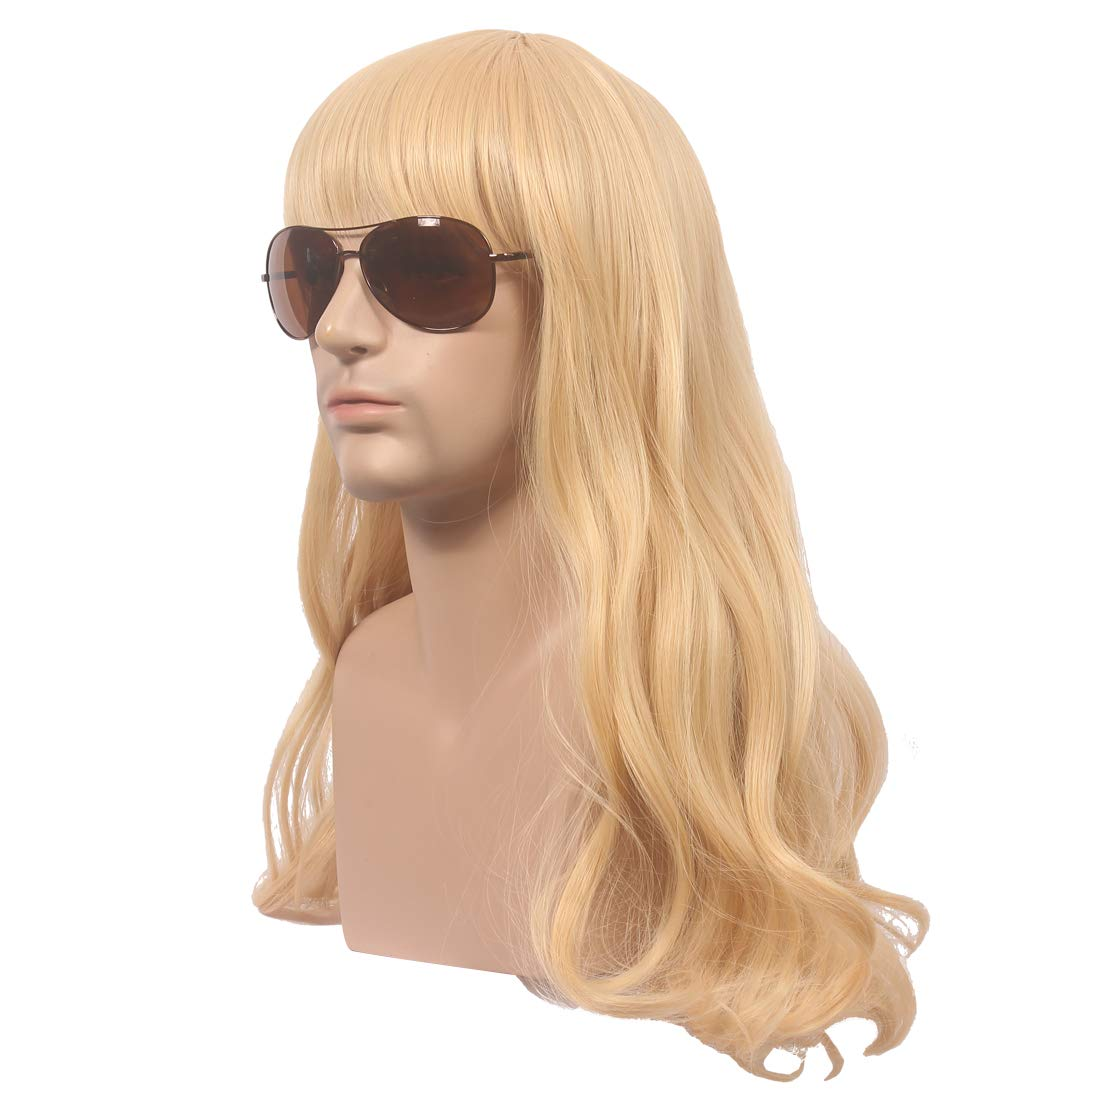 wildcos Long Blonde Curly Cosplay Wig for Men